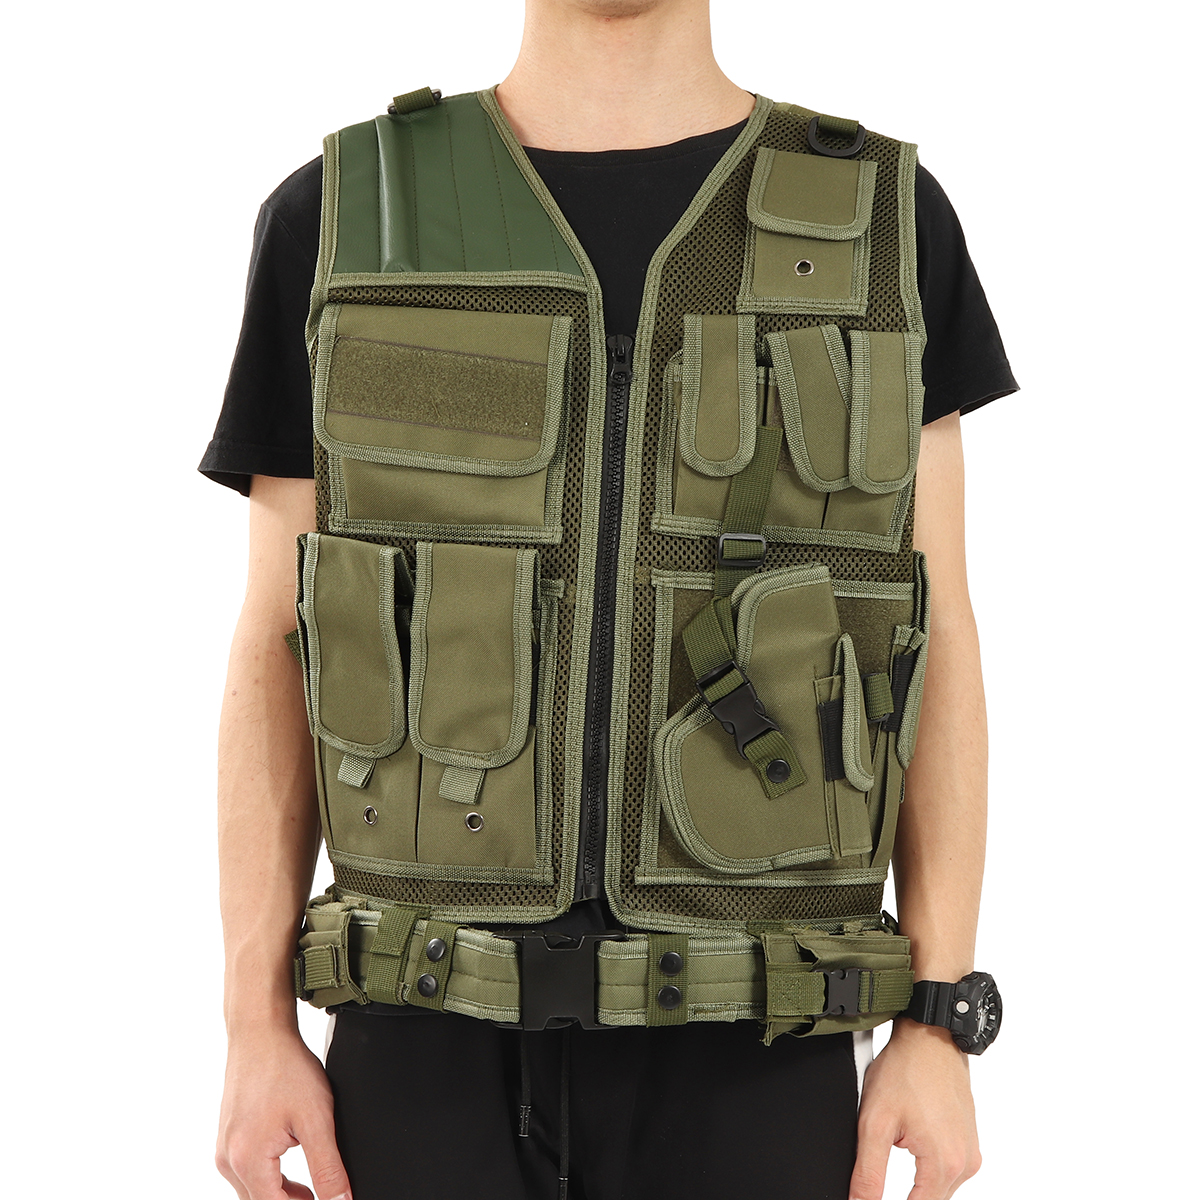 Military-Tactical-Vest-Carrier-Plate-Combat-Holster-Molle-Airsoft-Paintball-Vest